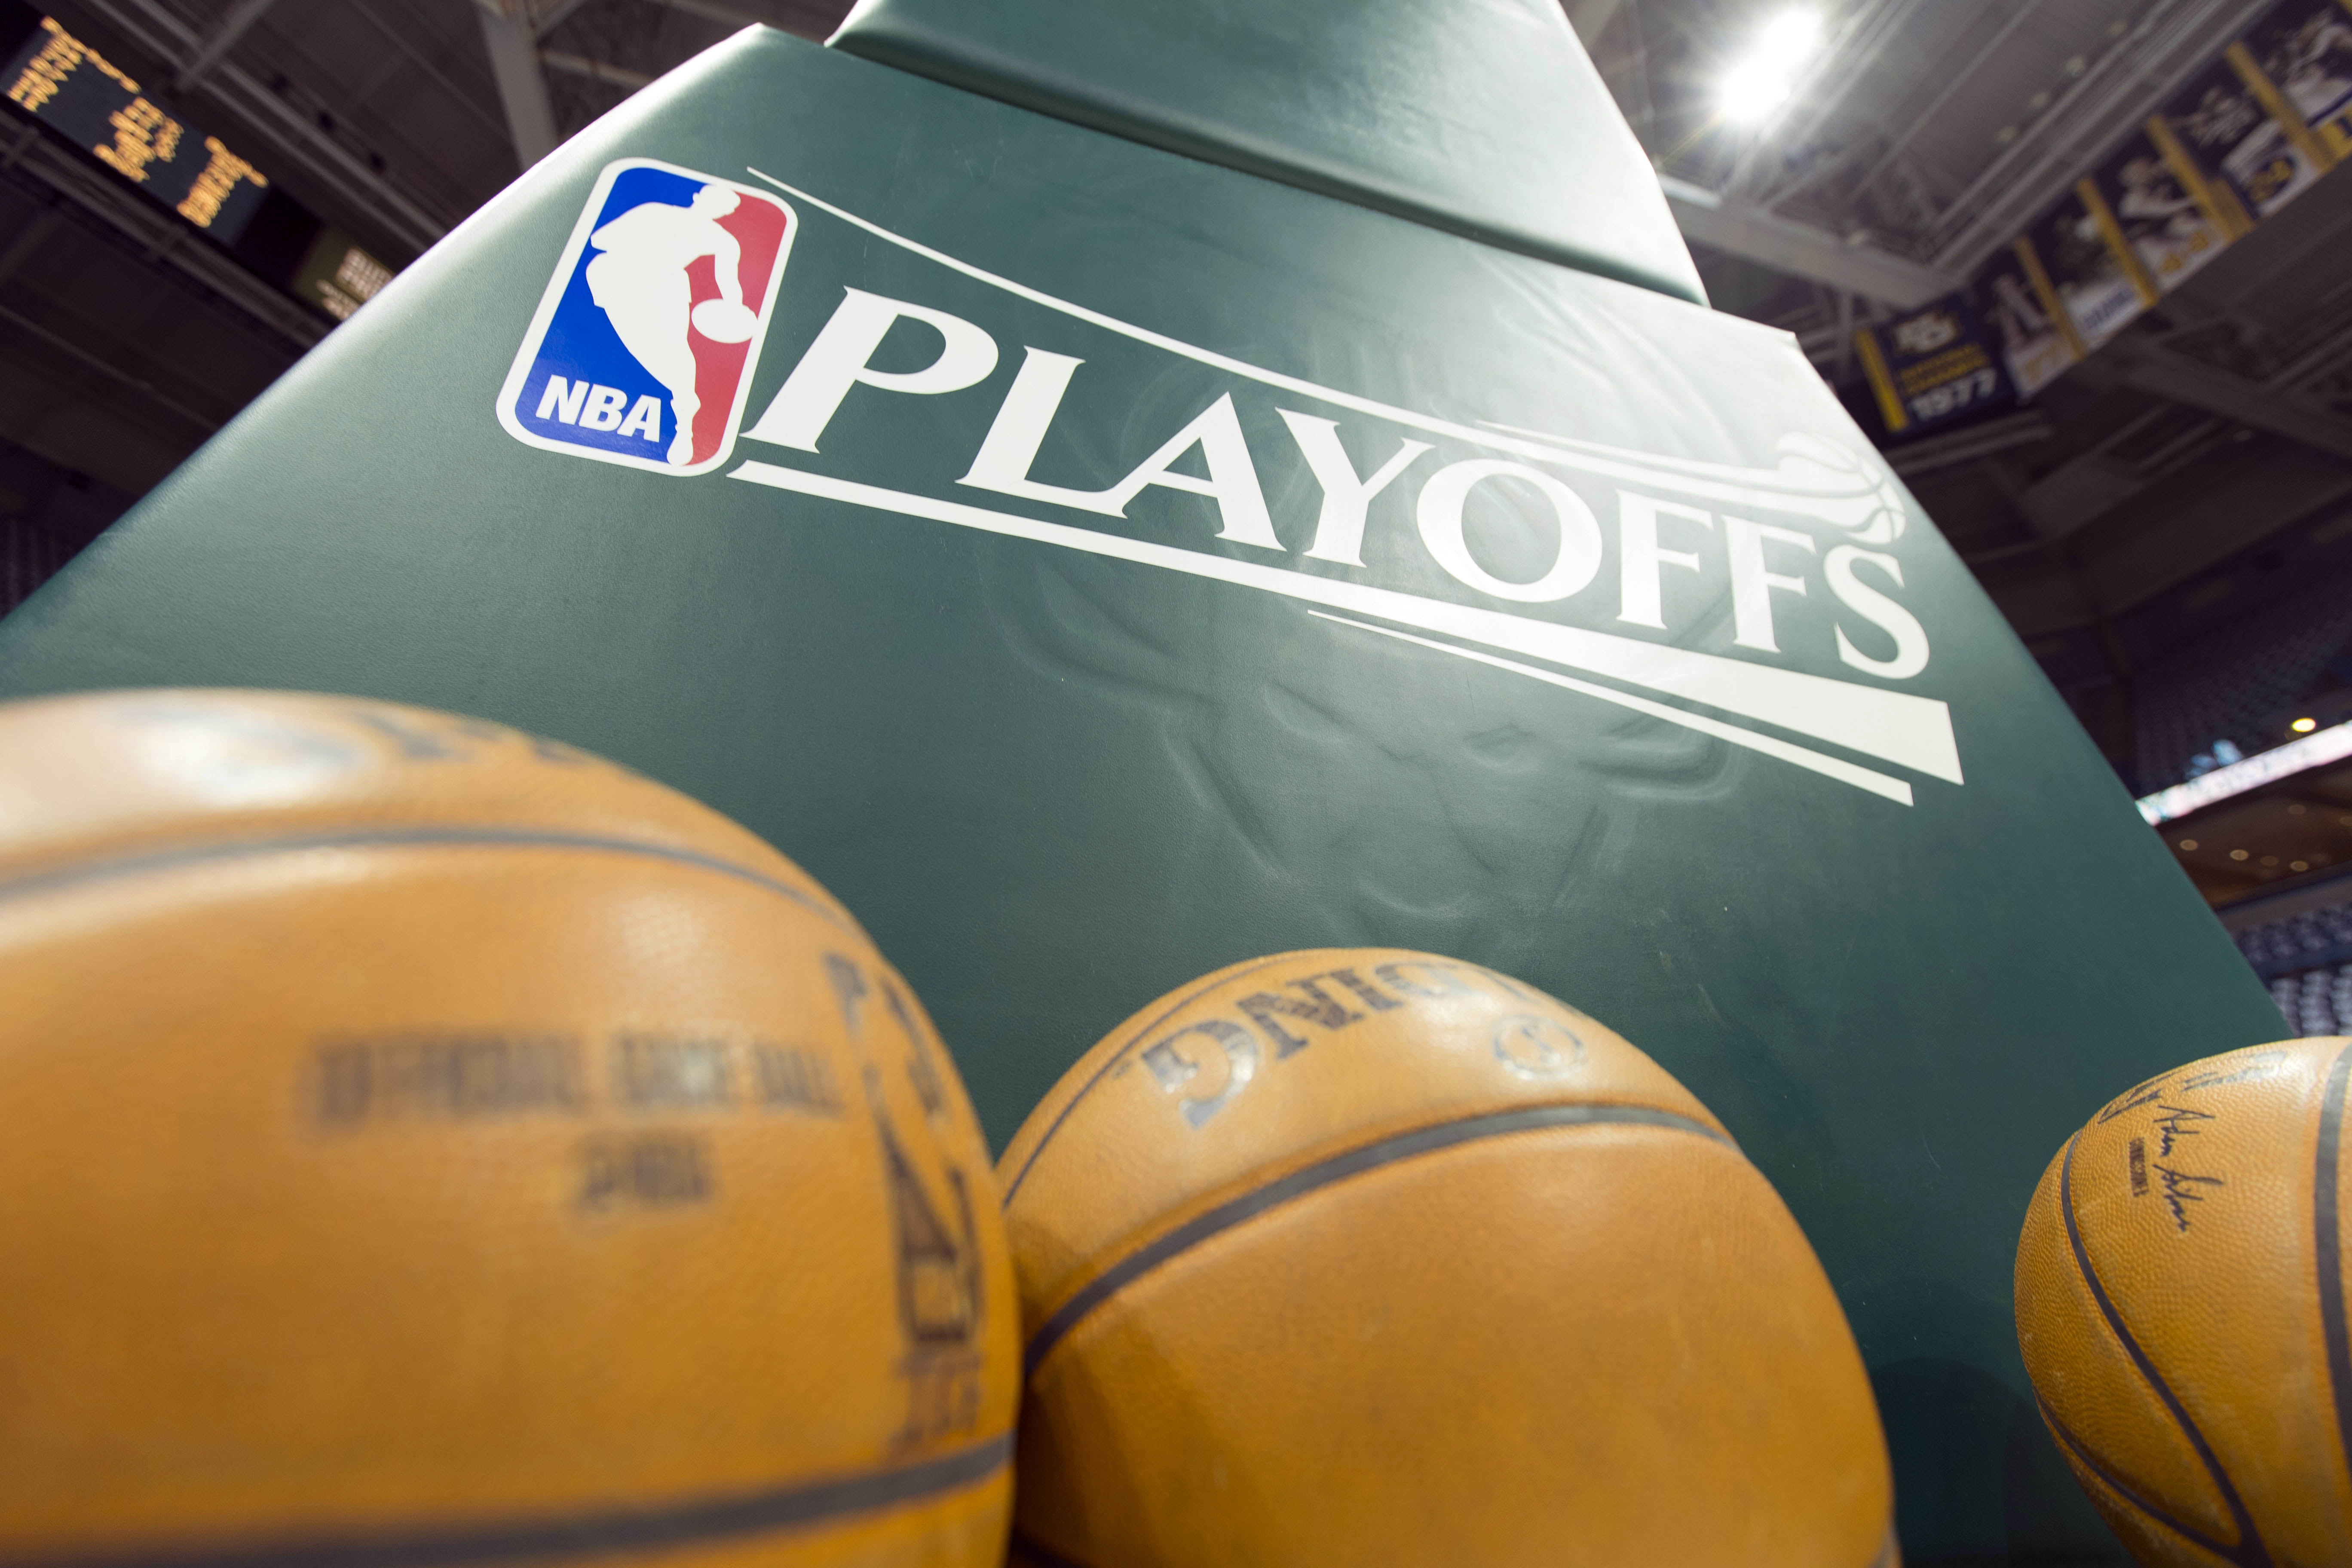 10024910-nba-playoffs-toronto-raptors-at-milwaukee-bucks